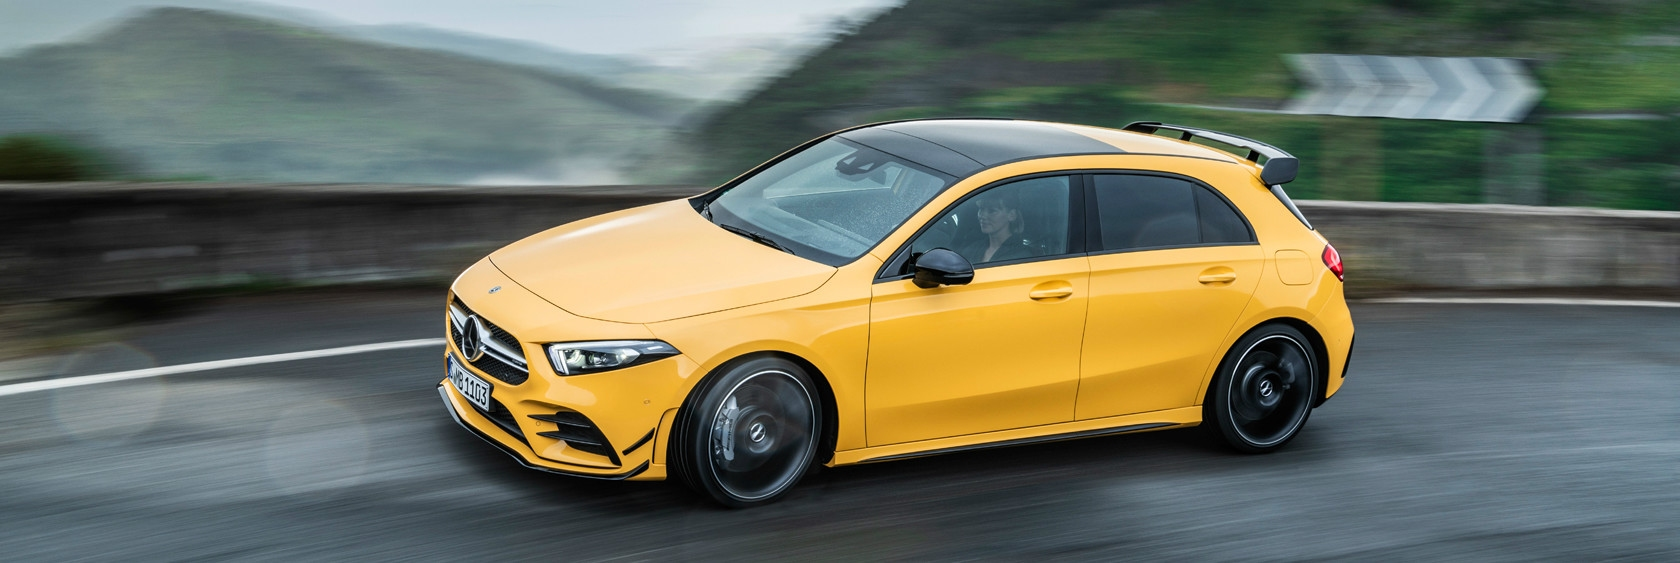 Mercedes-Benz Caribbean: New Mercedes-AMG A35 4MATIC